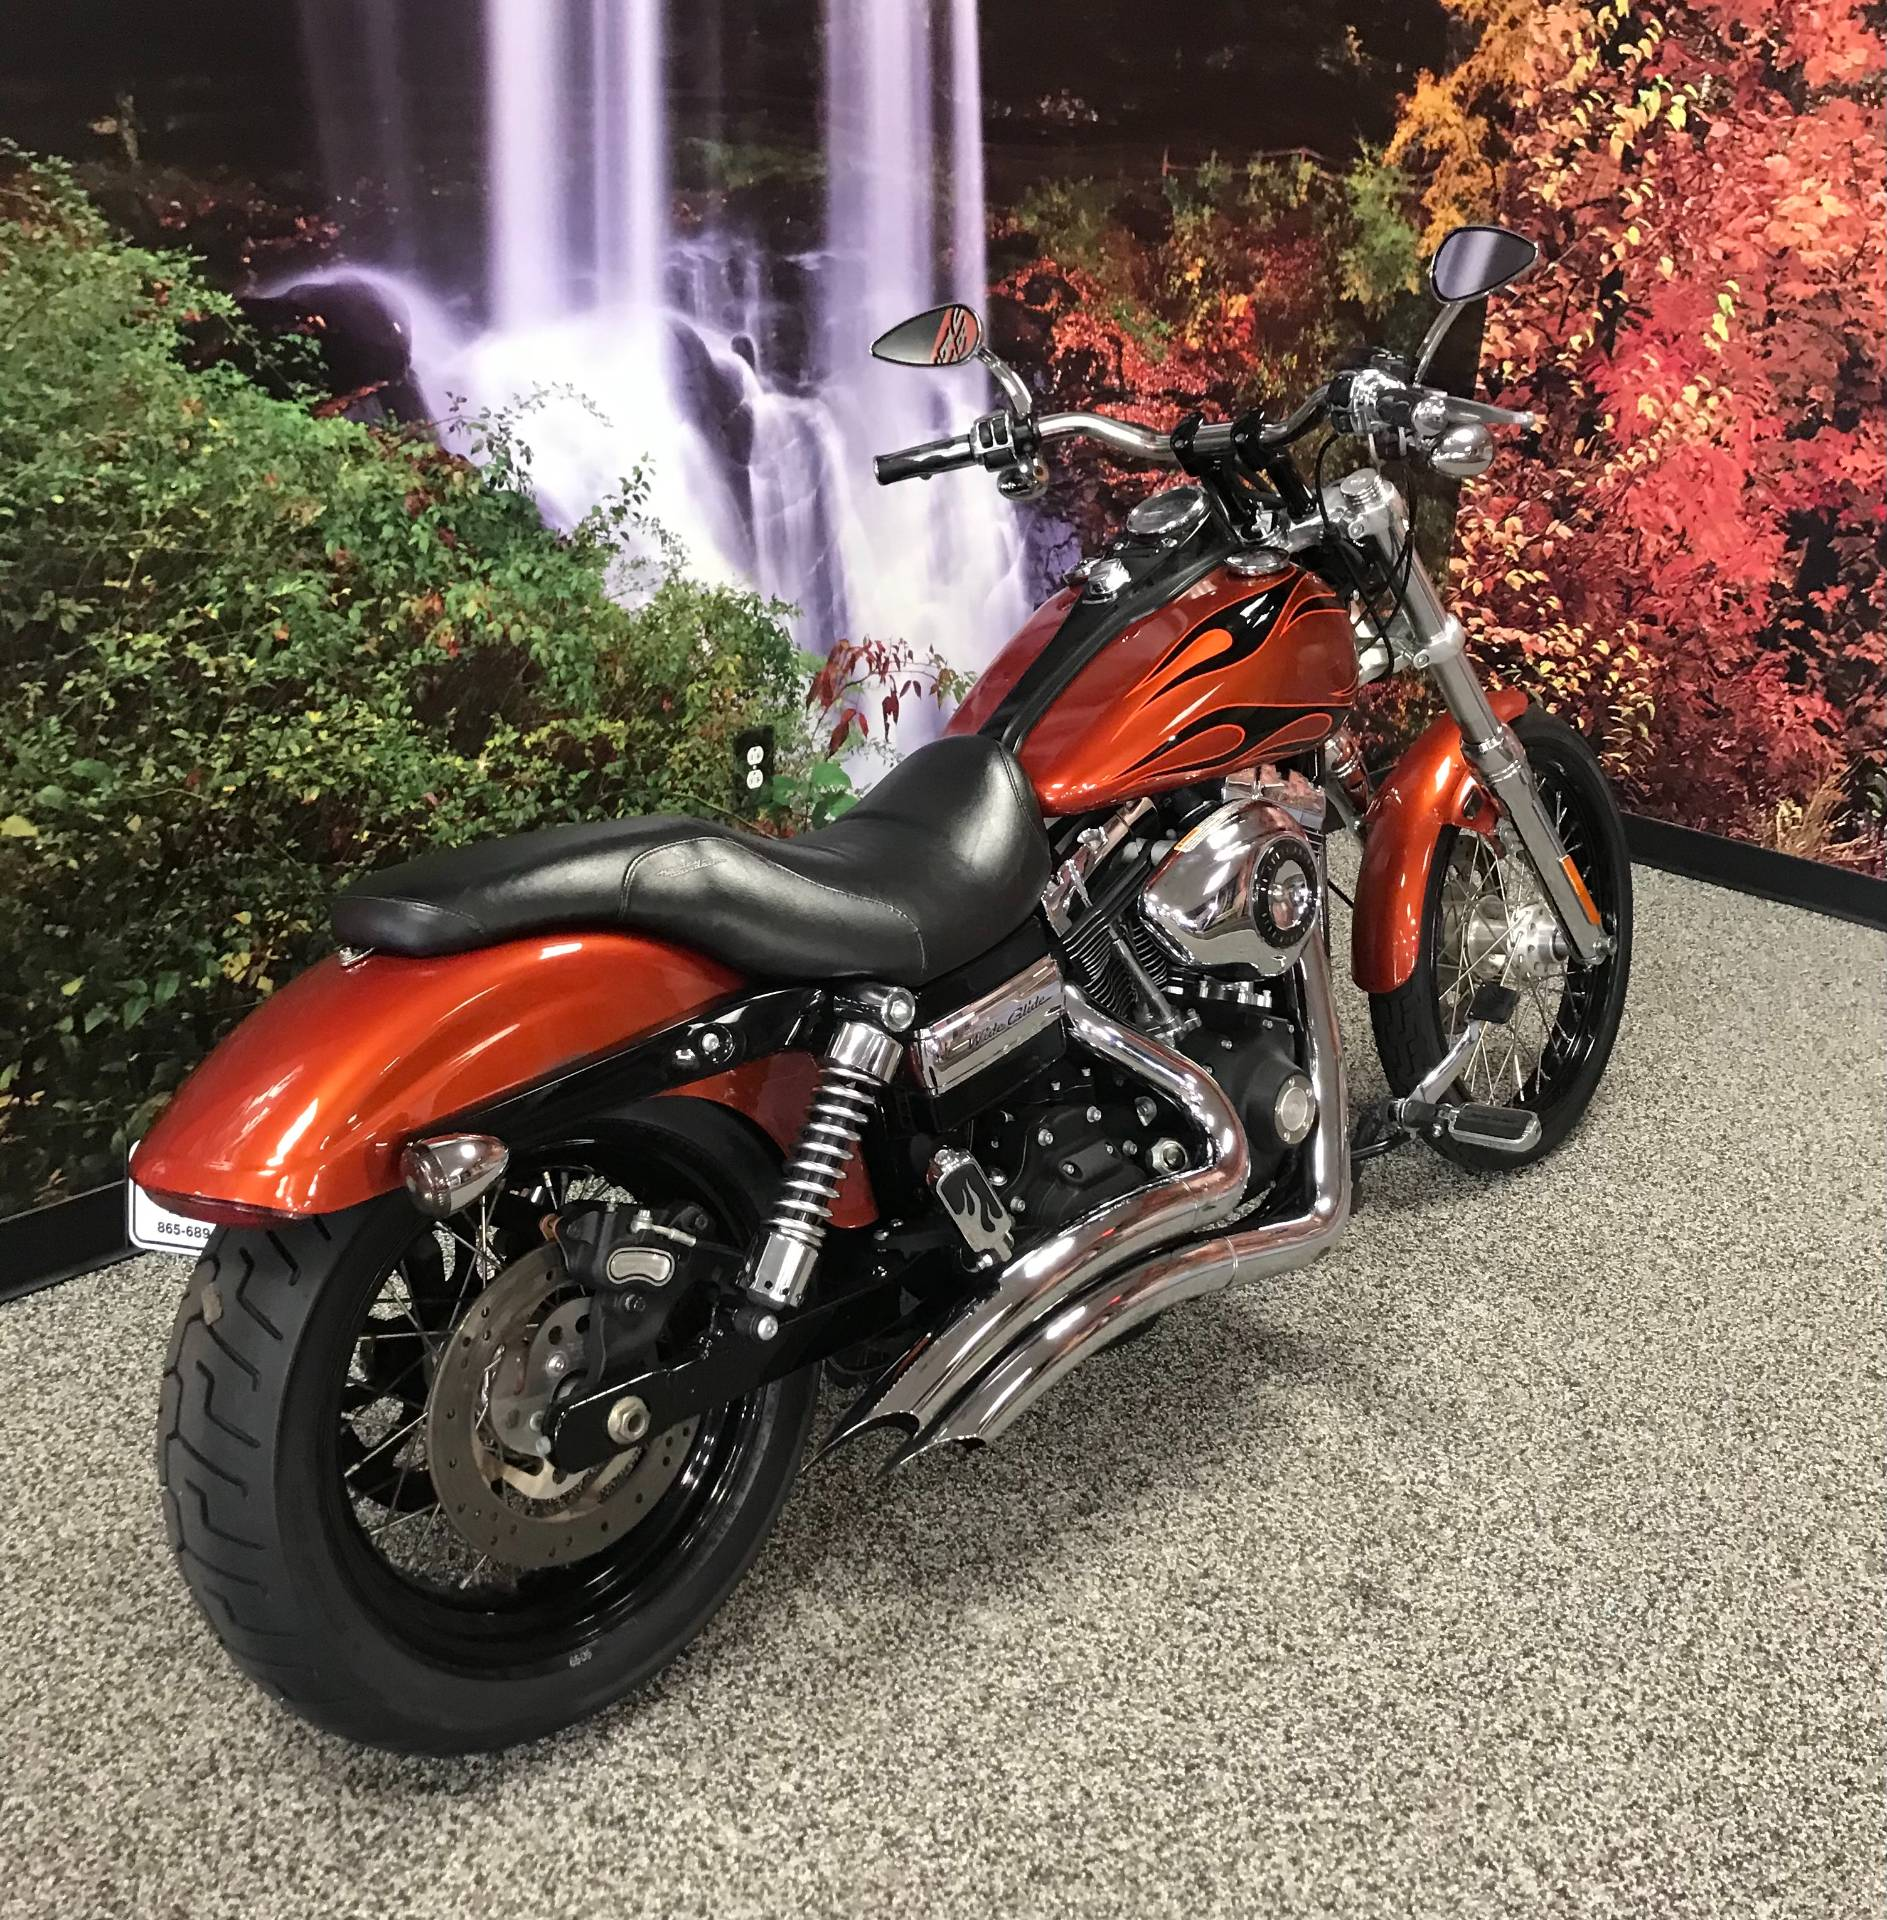 2011 Harley-Davidson Dyna® Wide Glide® in Knoxville, Tennessee - Photo 2